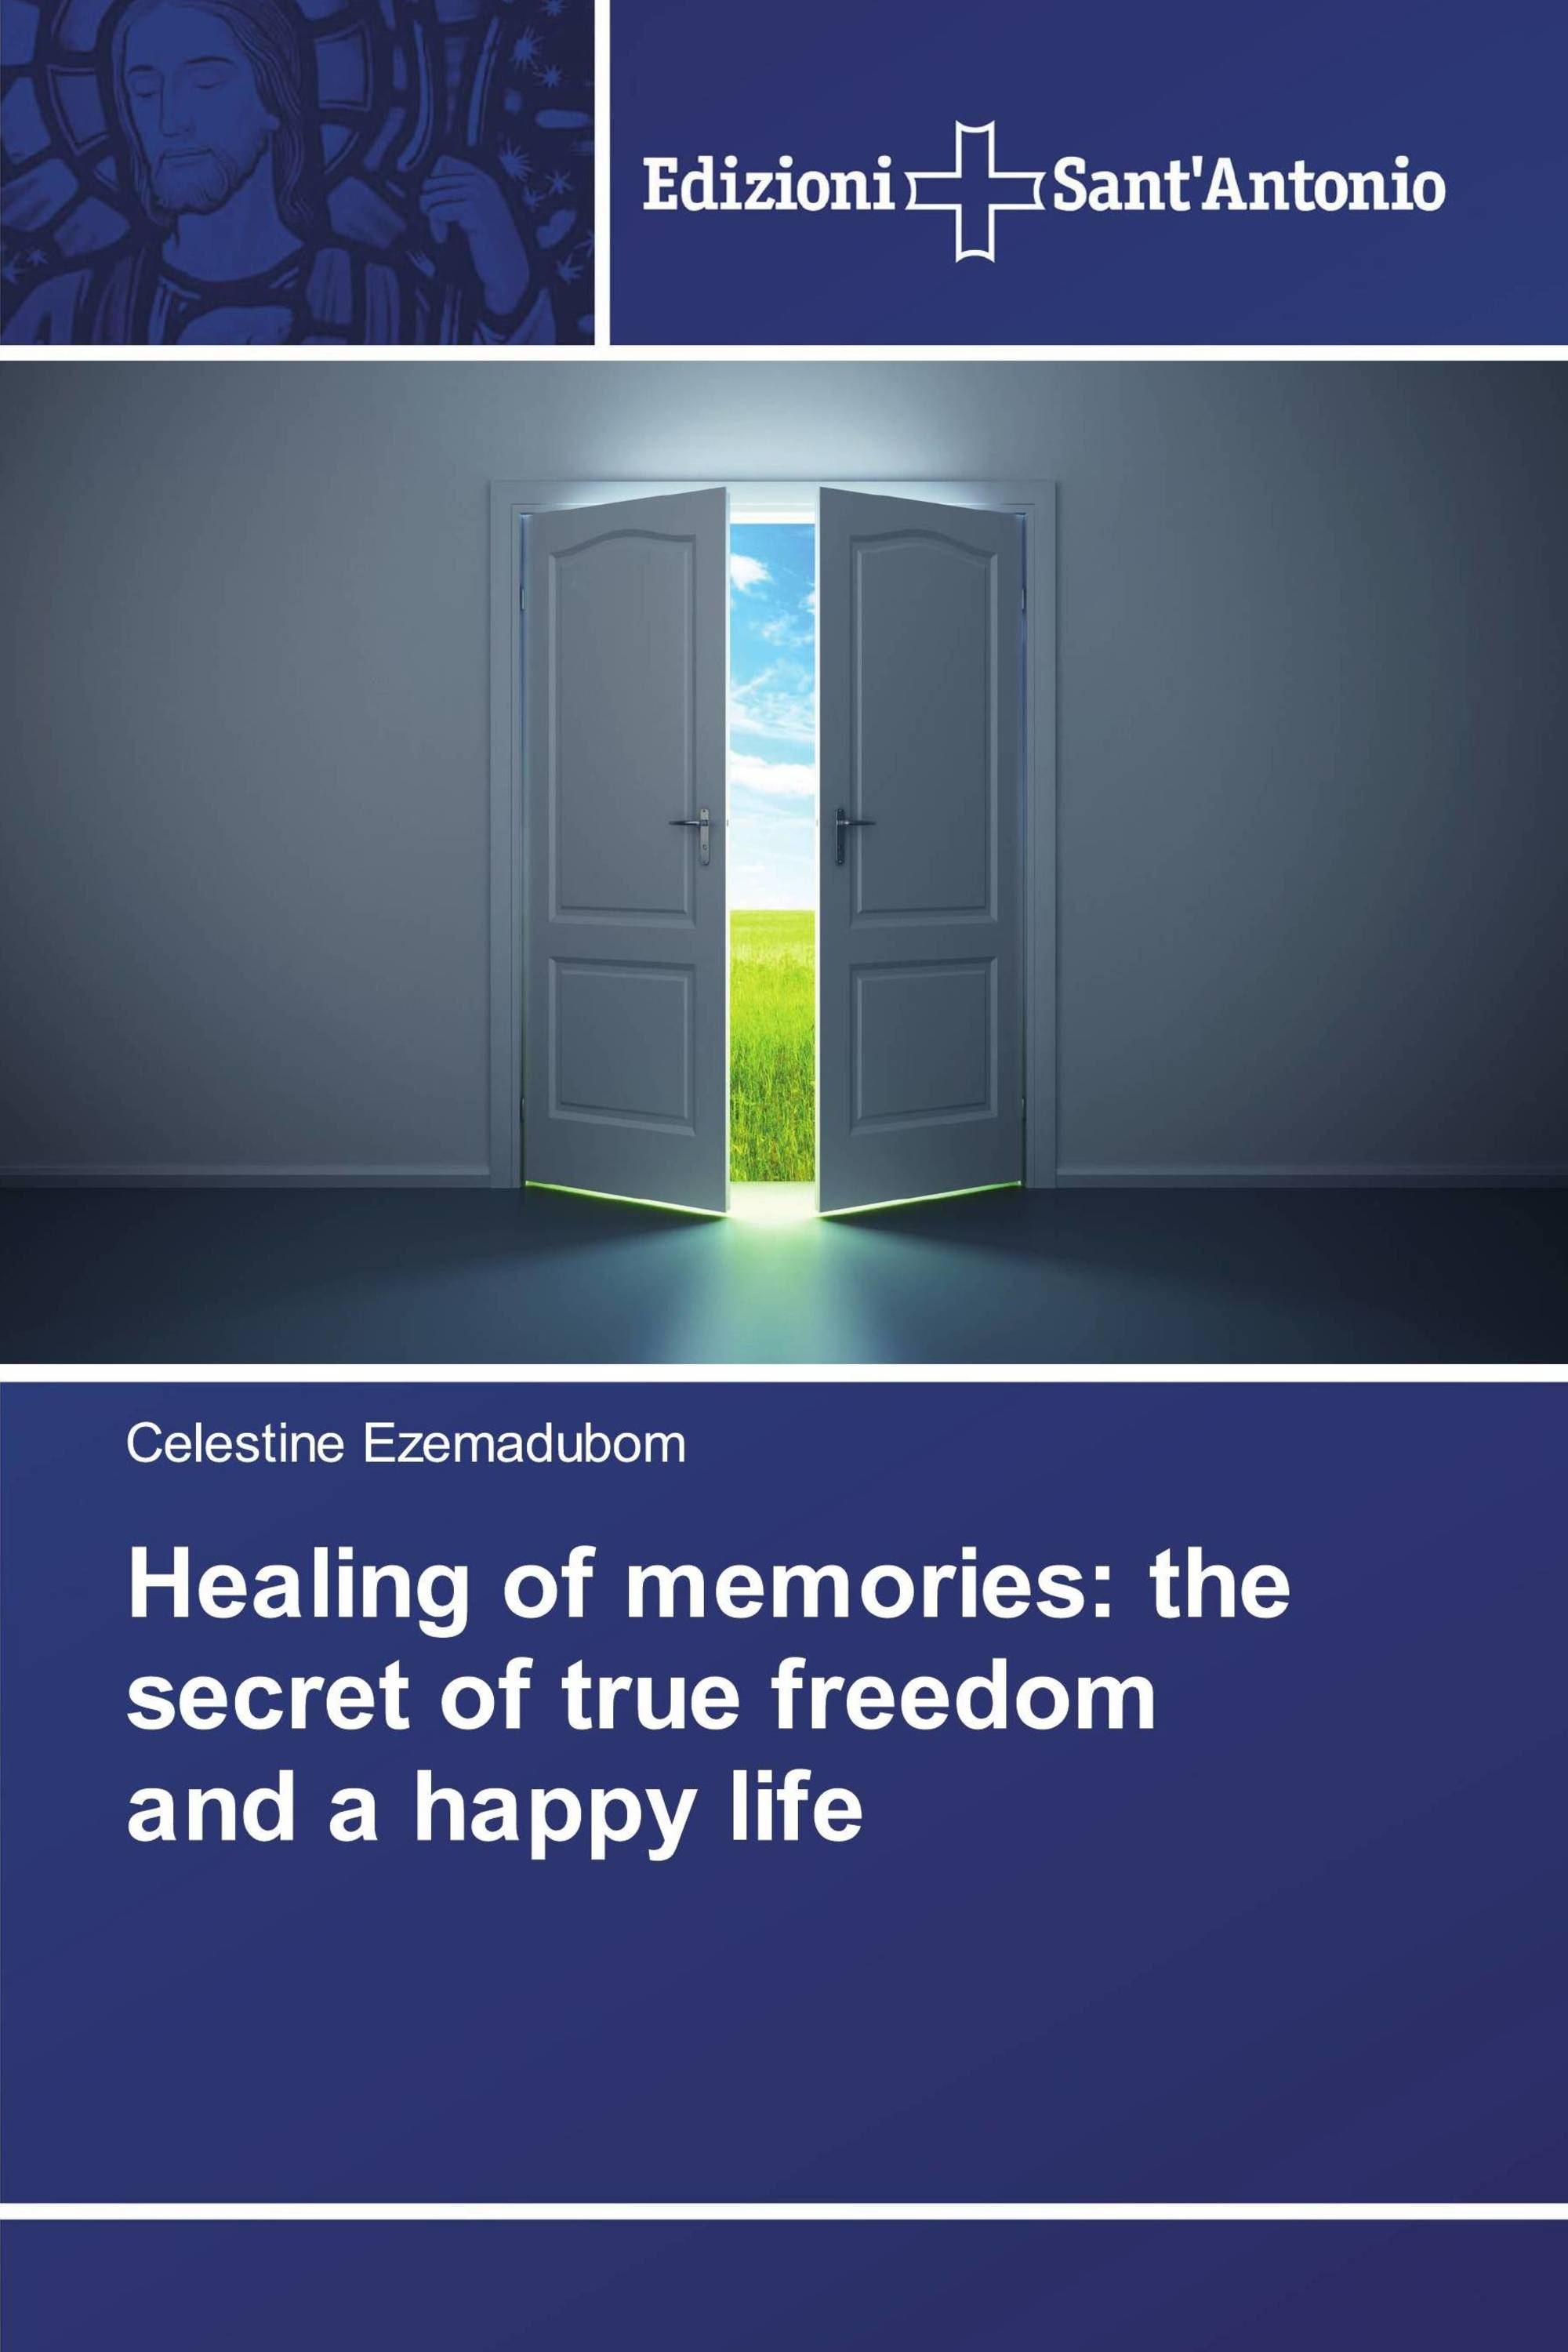 Healing of memories: the secret of true freedom and a happy life